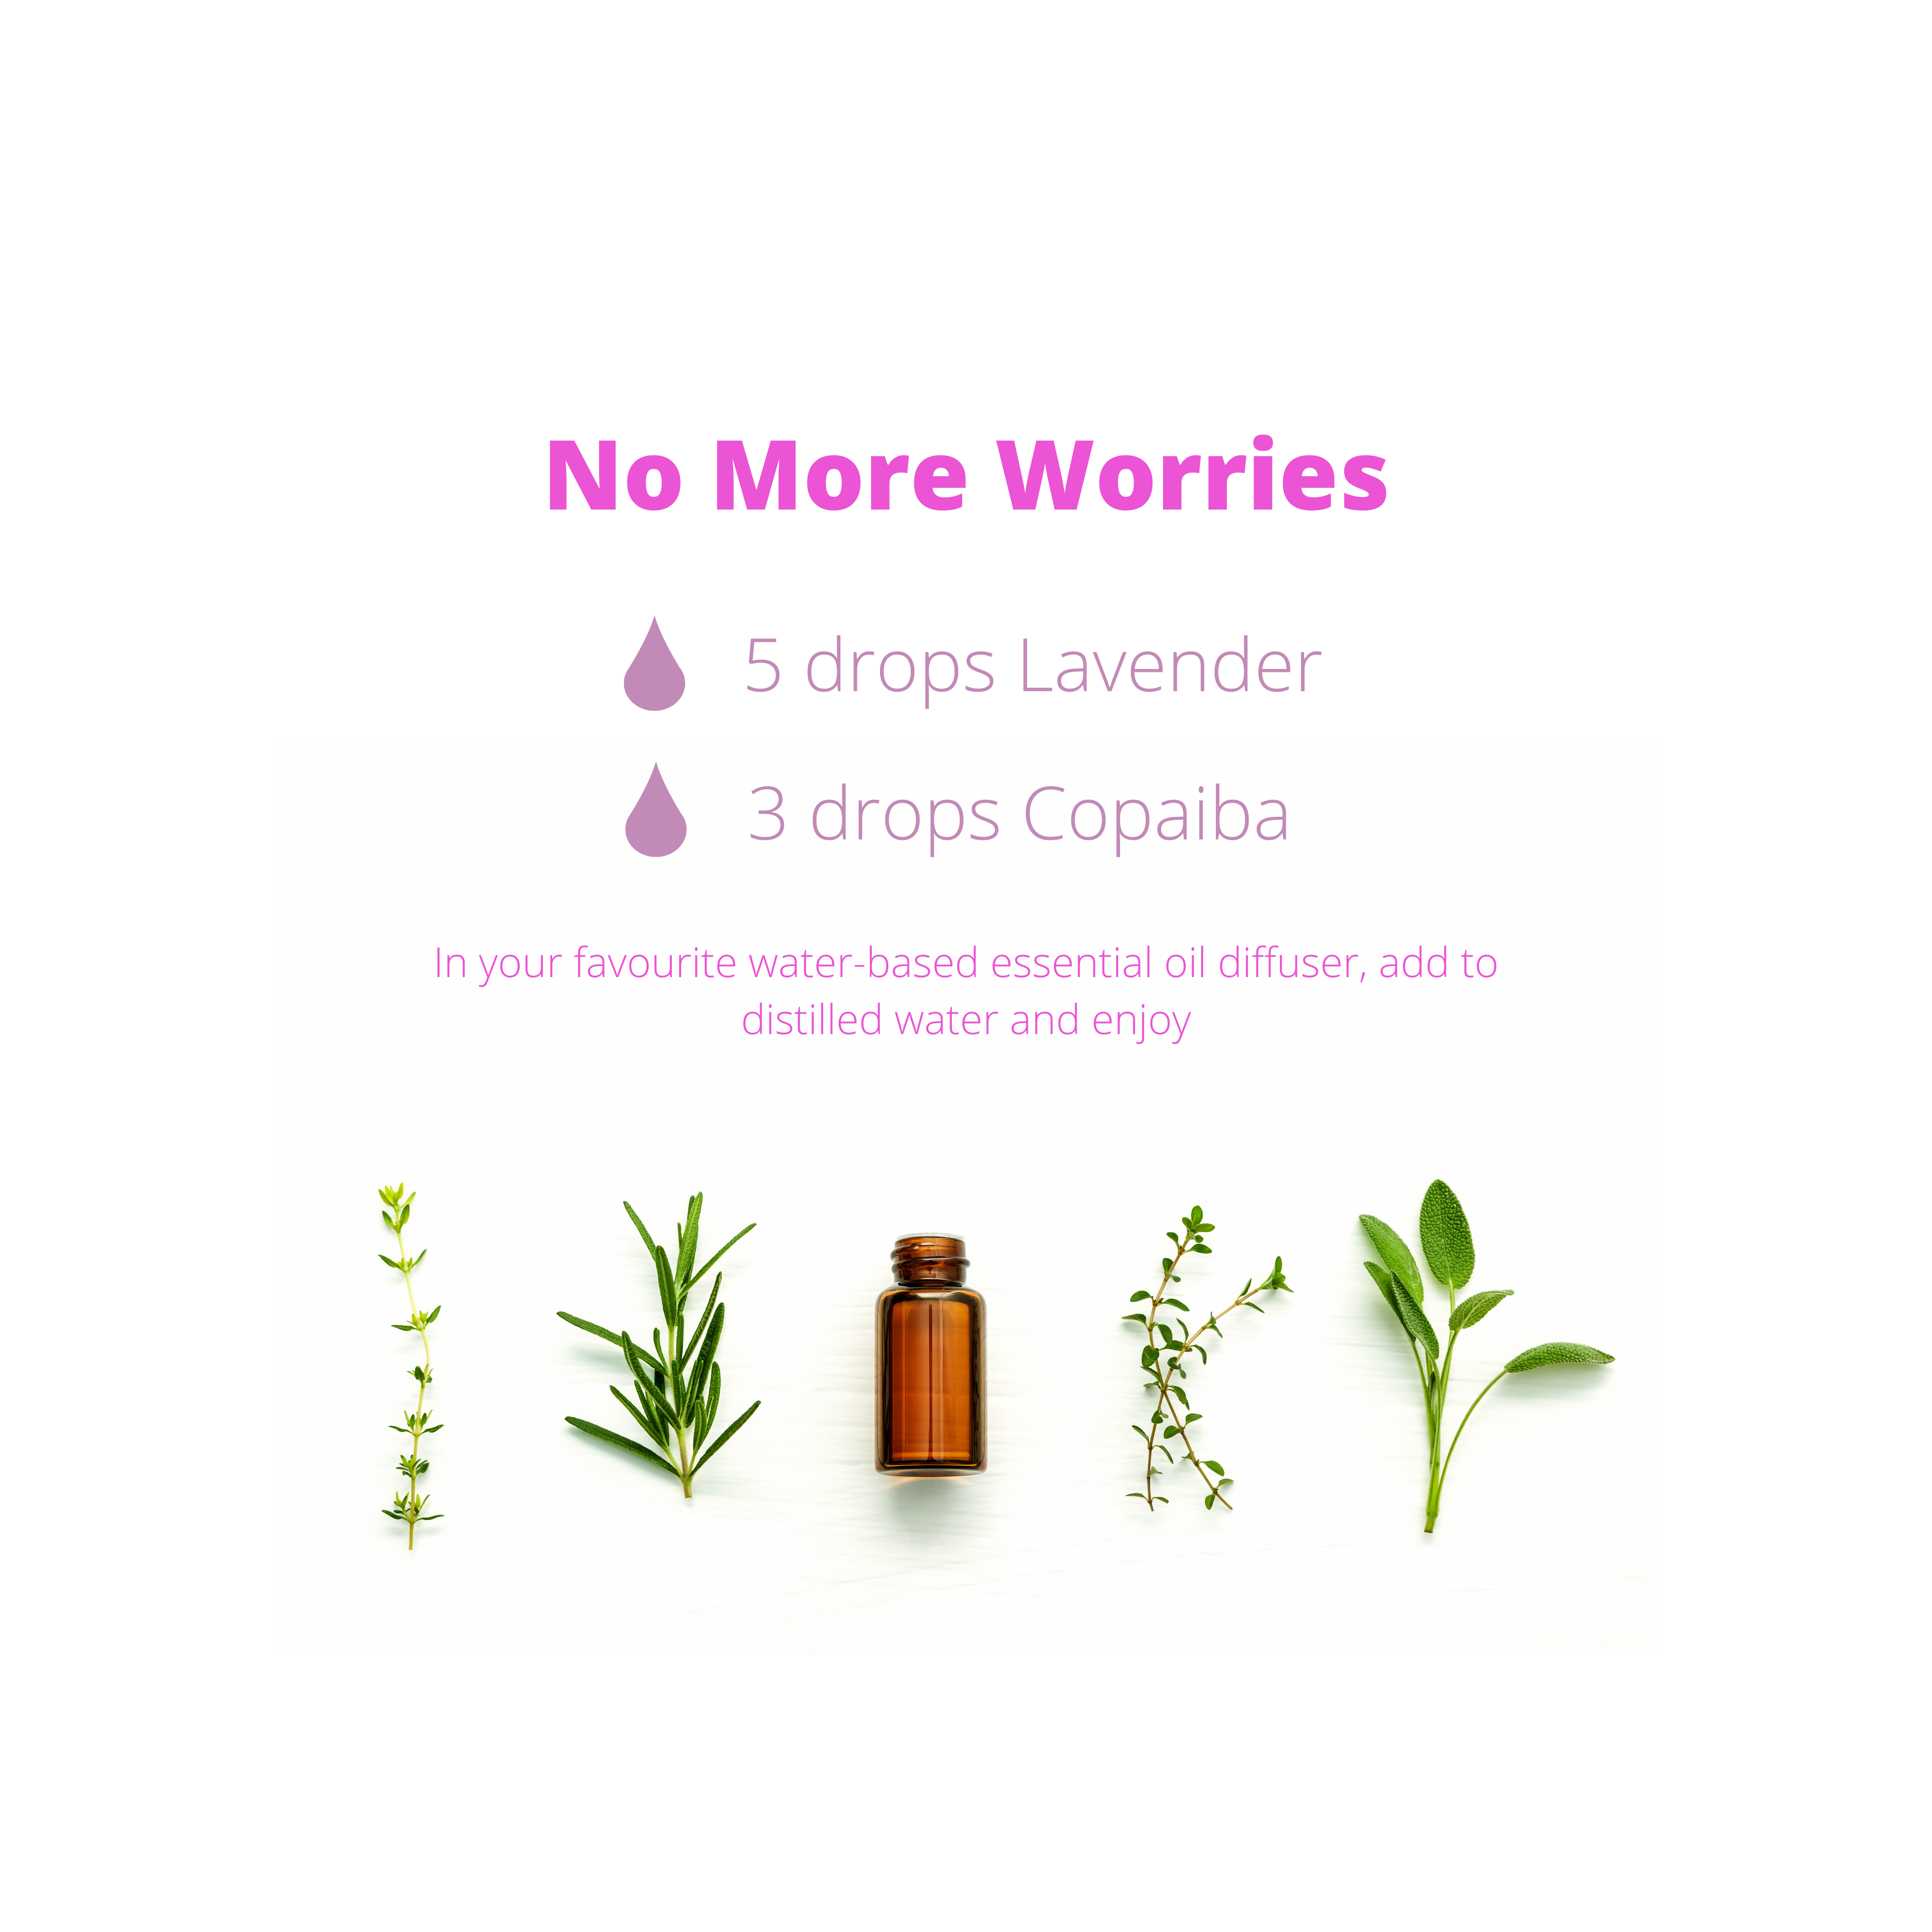 No More Worries Diffuser Blend